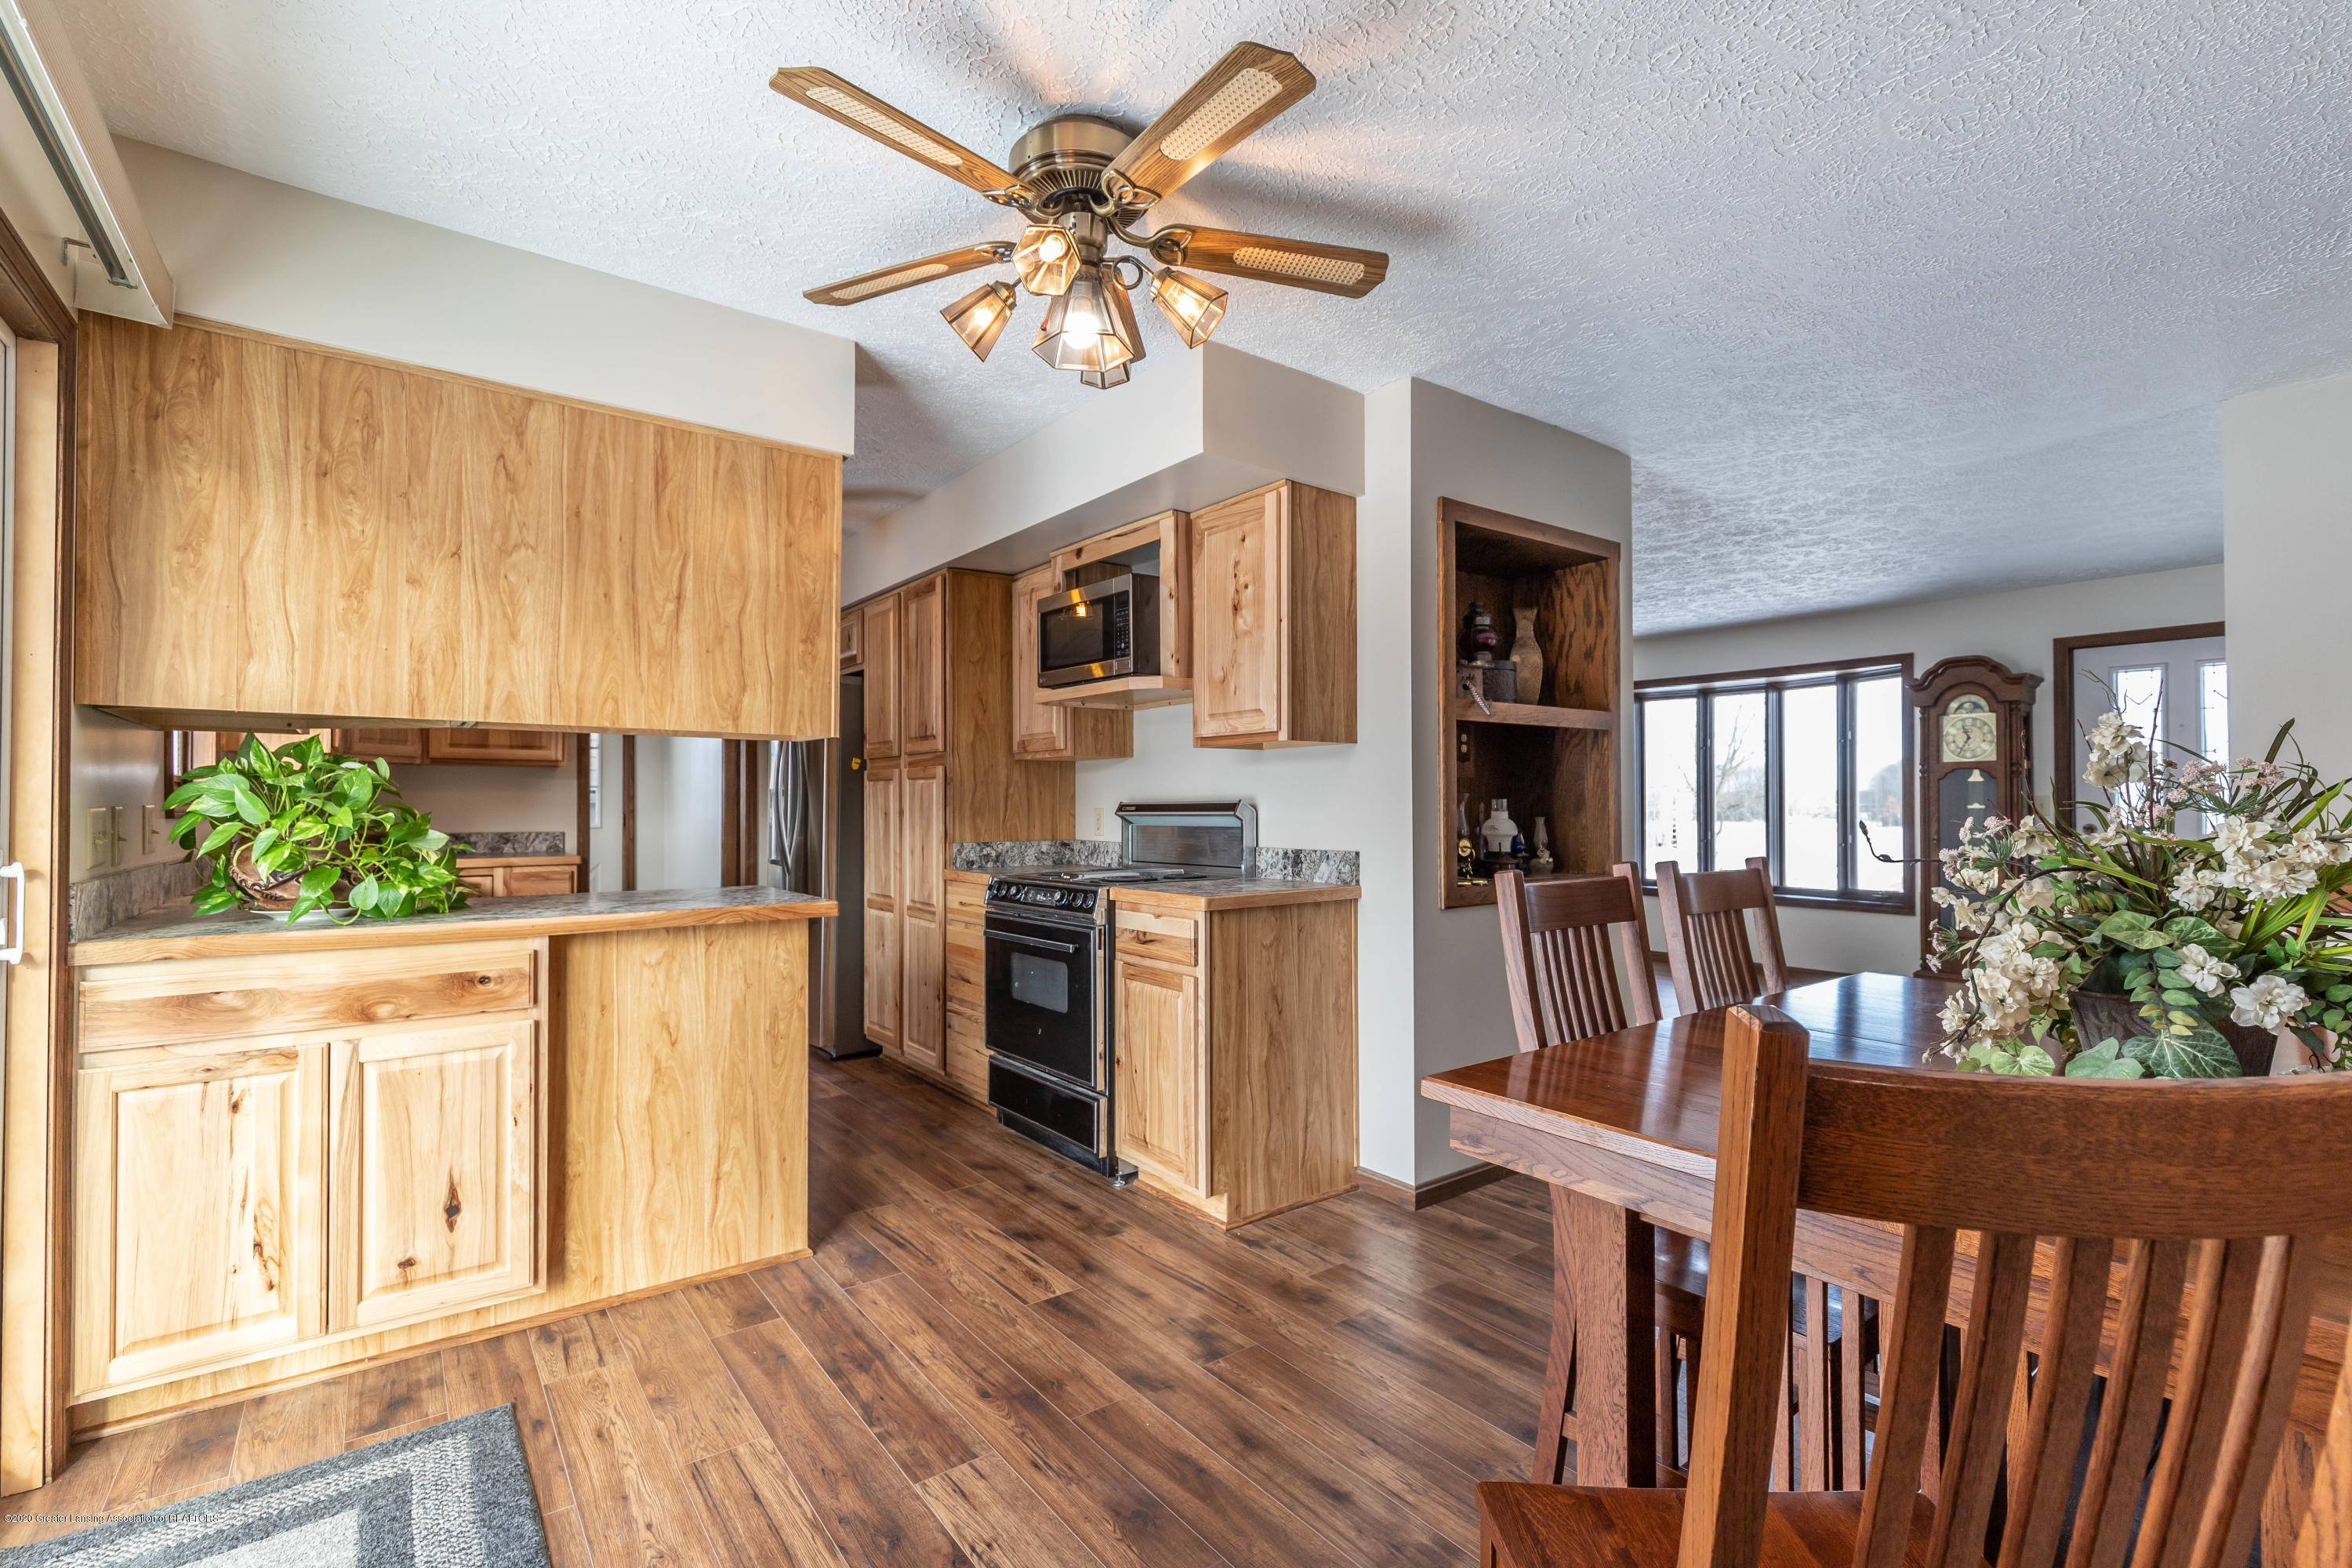 6111 S Morrice Rd - Dining Area - 8